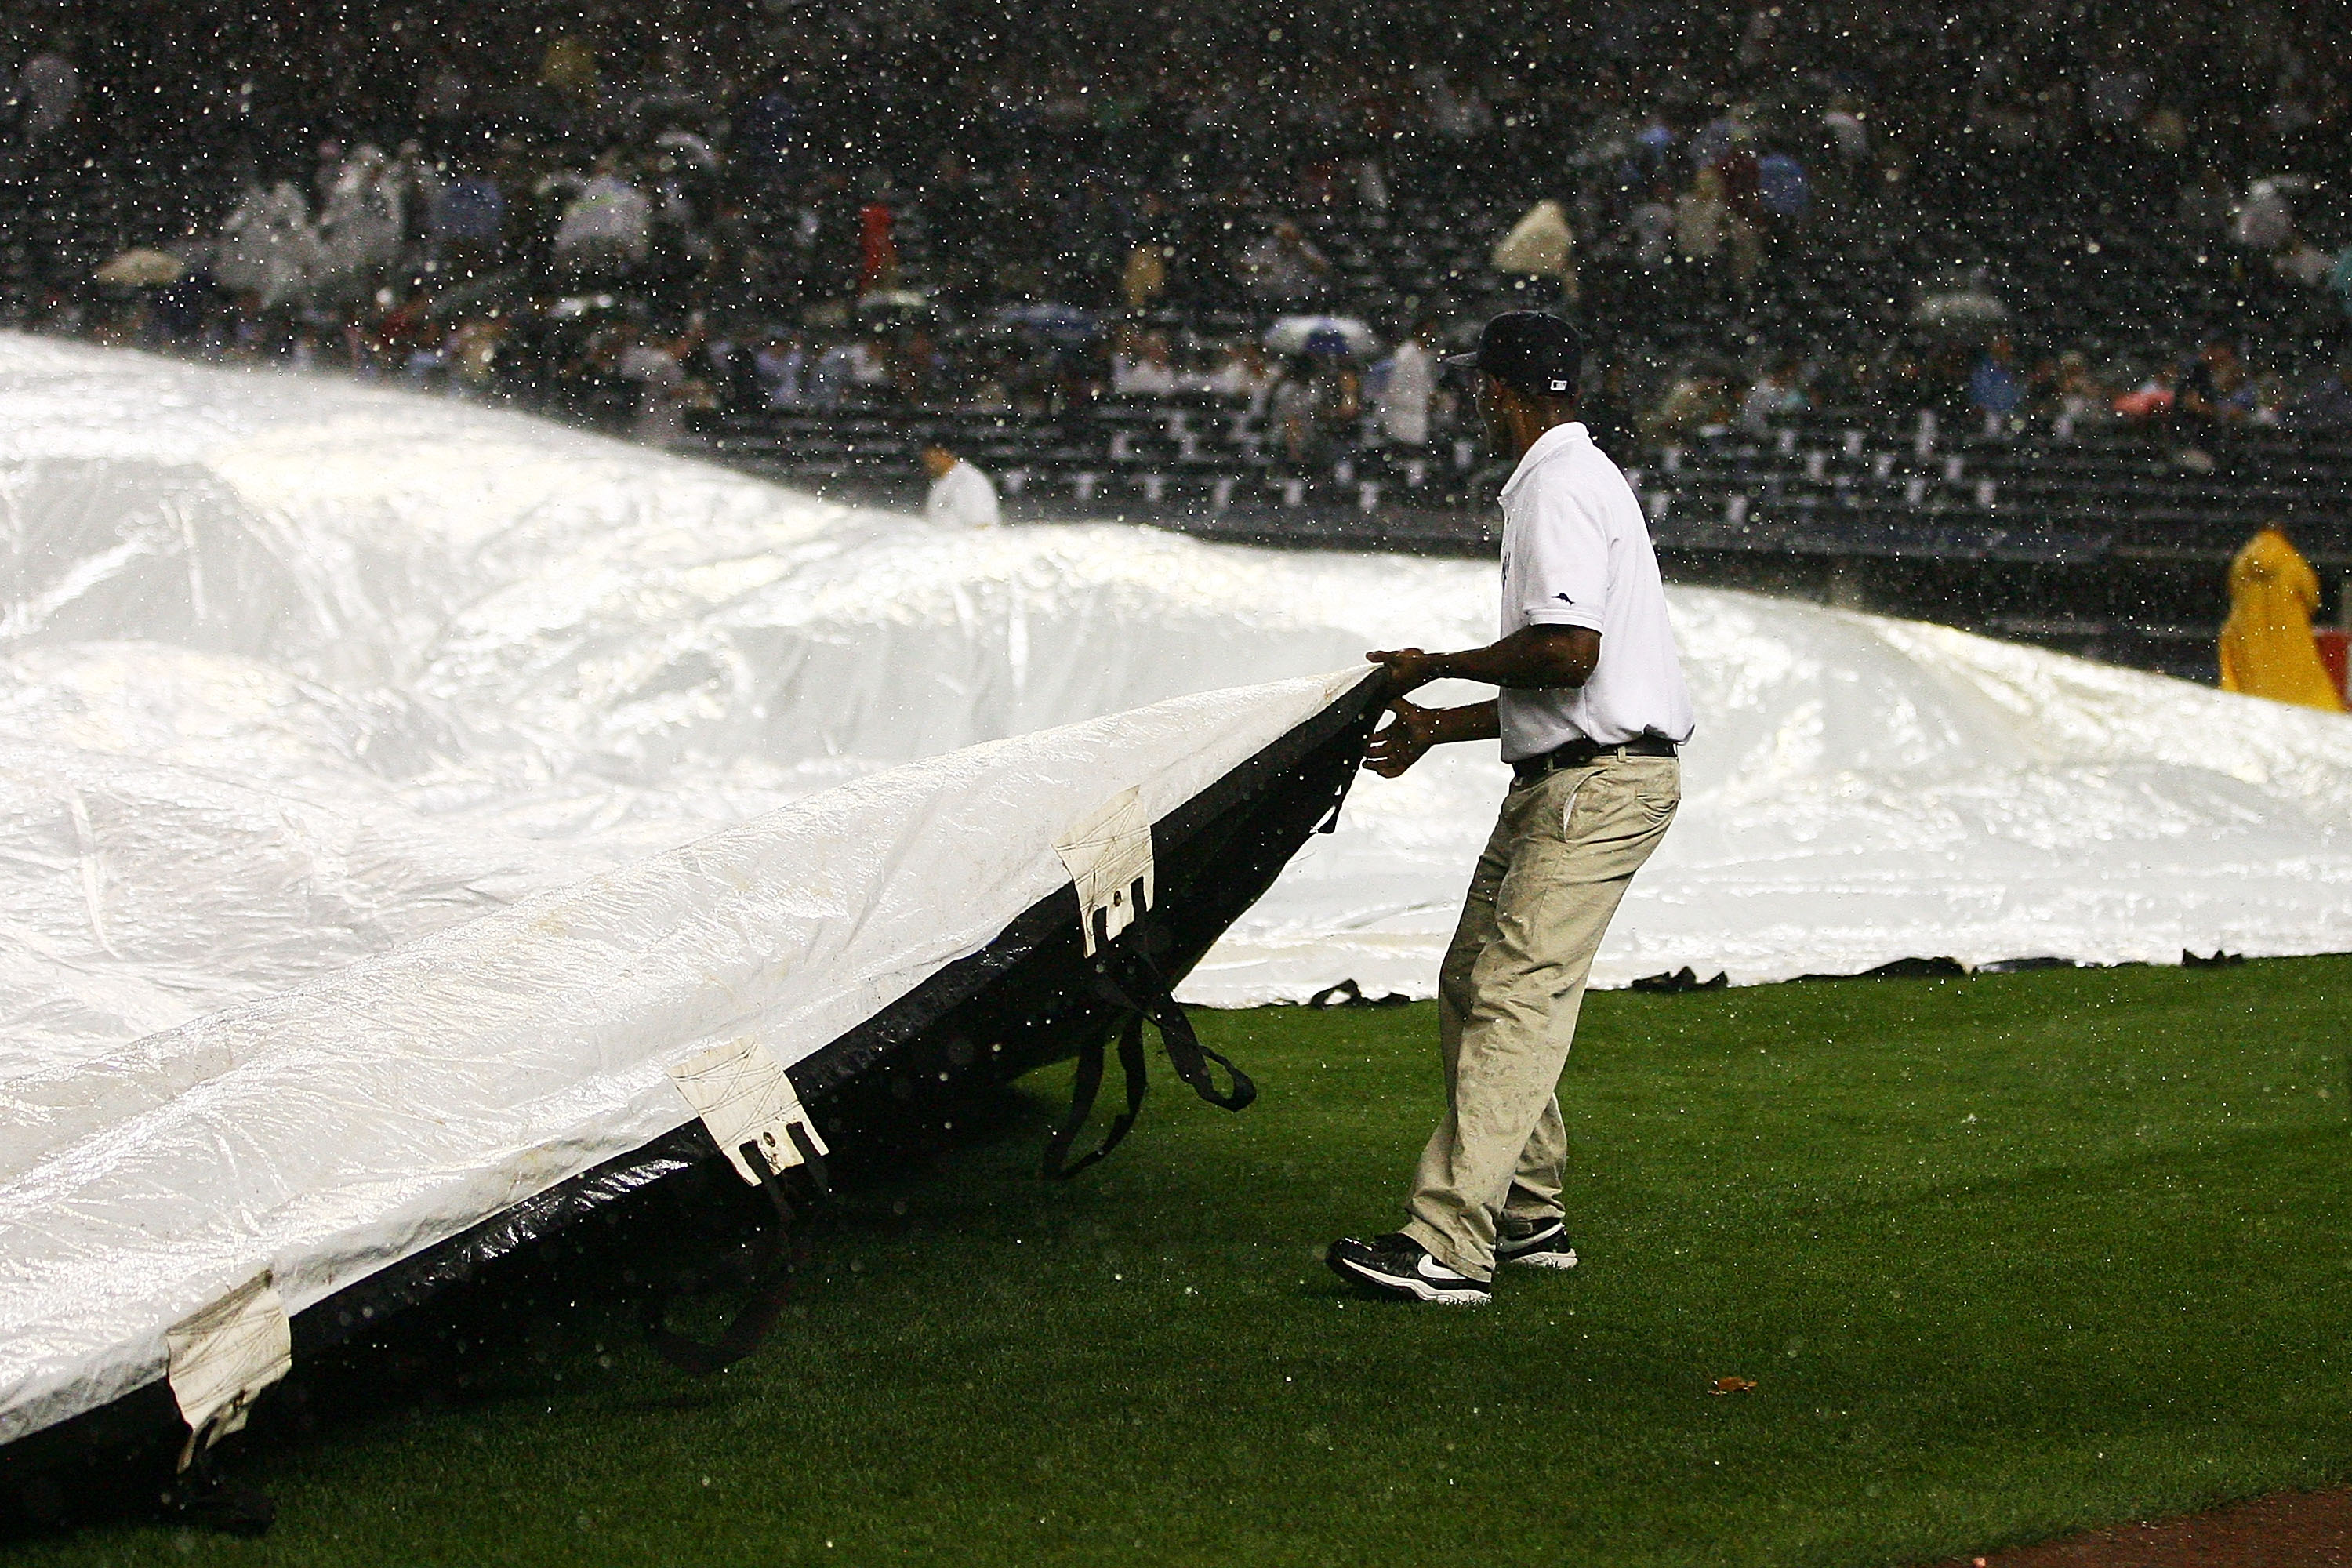 NEW YORK - SEPTEMBER 22:  Members of the New York Yankees grounds keeping crew cover the field at the start of a rain delay during the third inning against the Tampa Bay Rays on September 22, 2010 at Yankee Stadium in the Bronx borough of New York City.